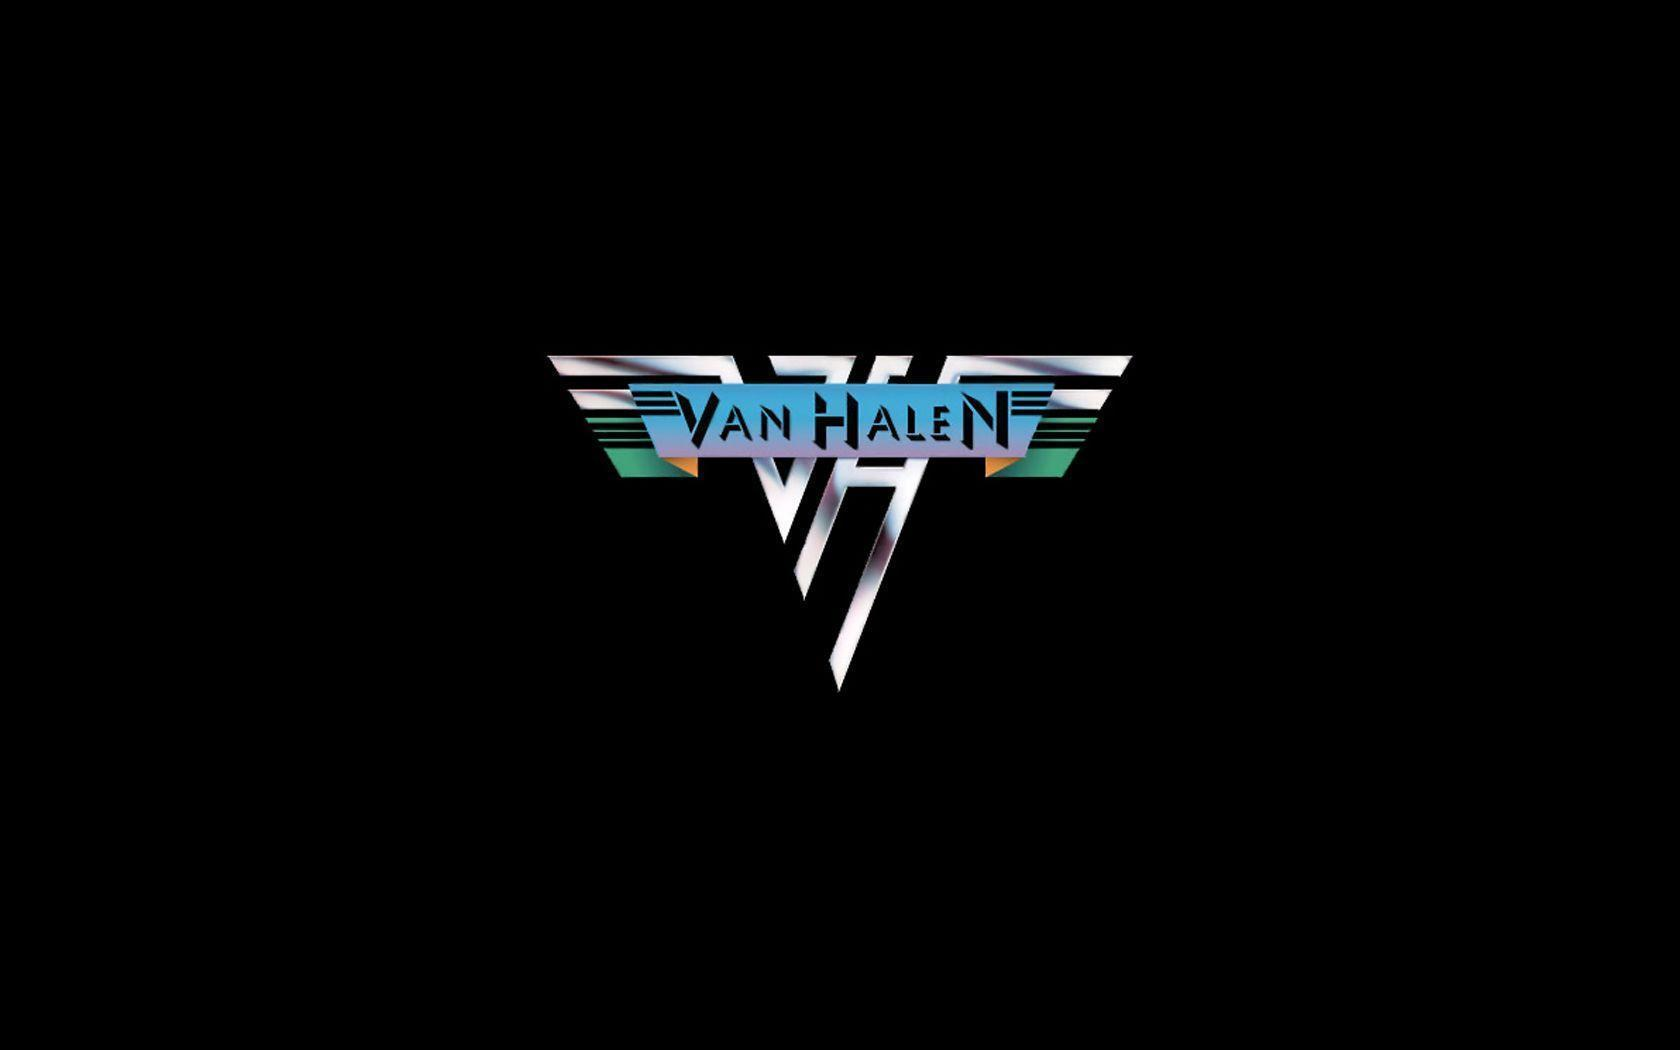 Van Halen Silver Logo HD Wallpapers